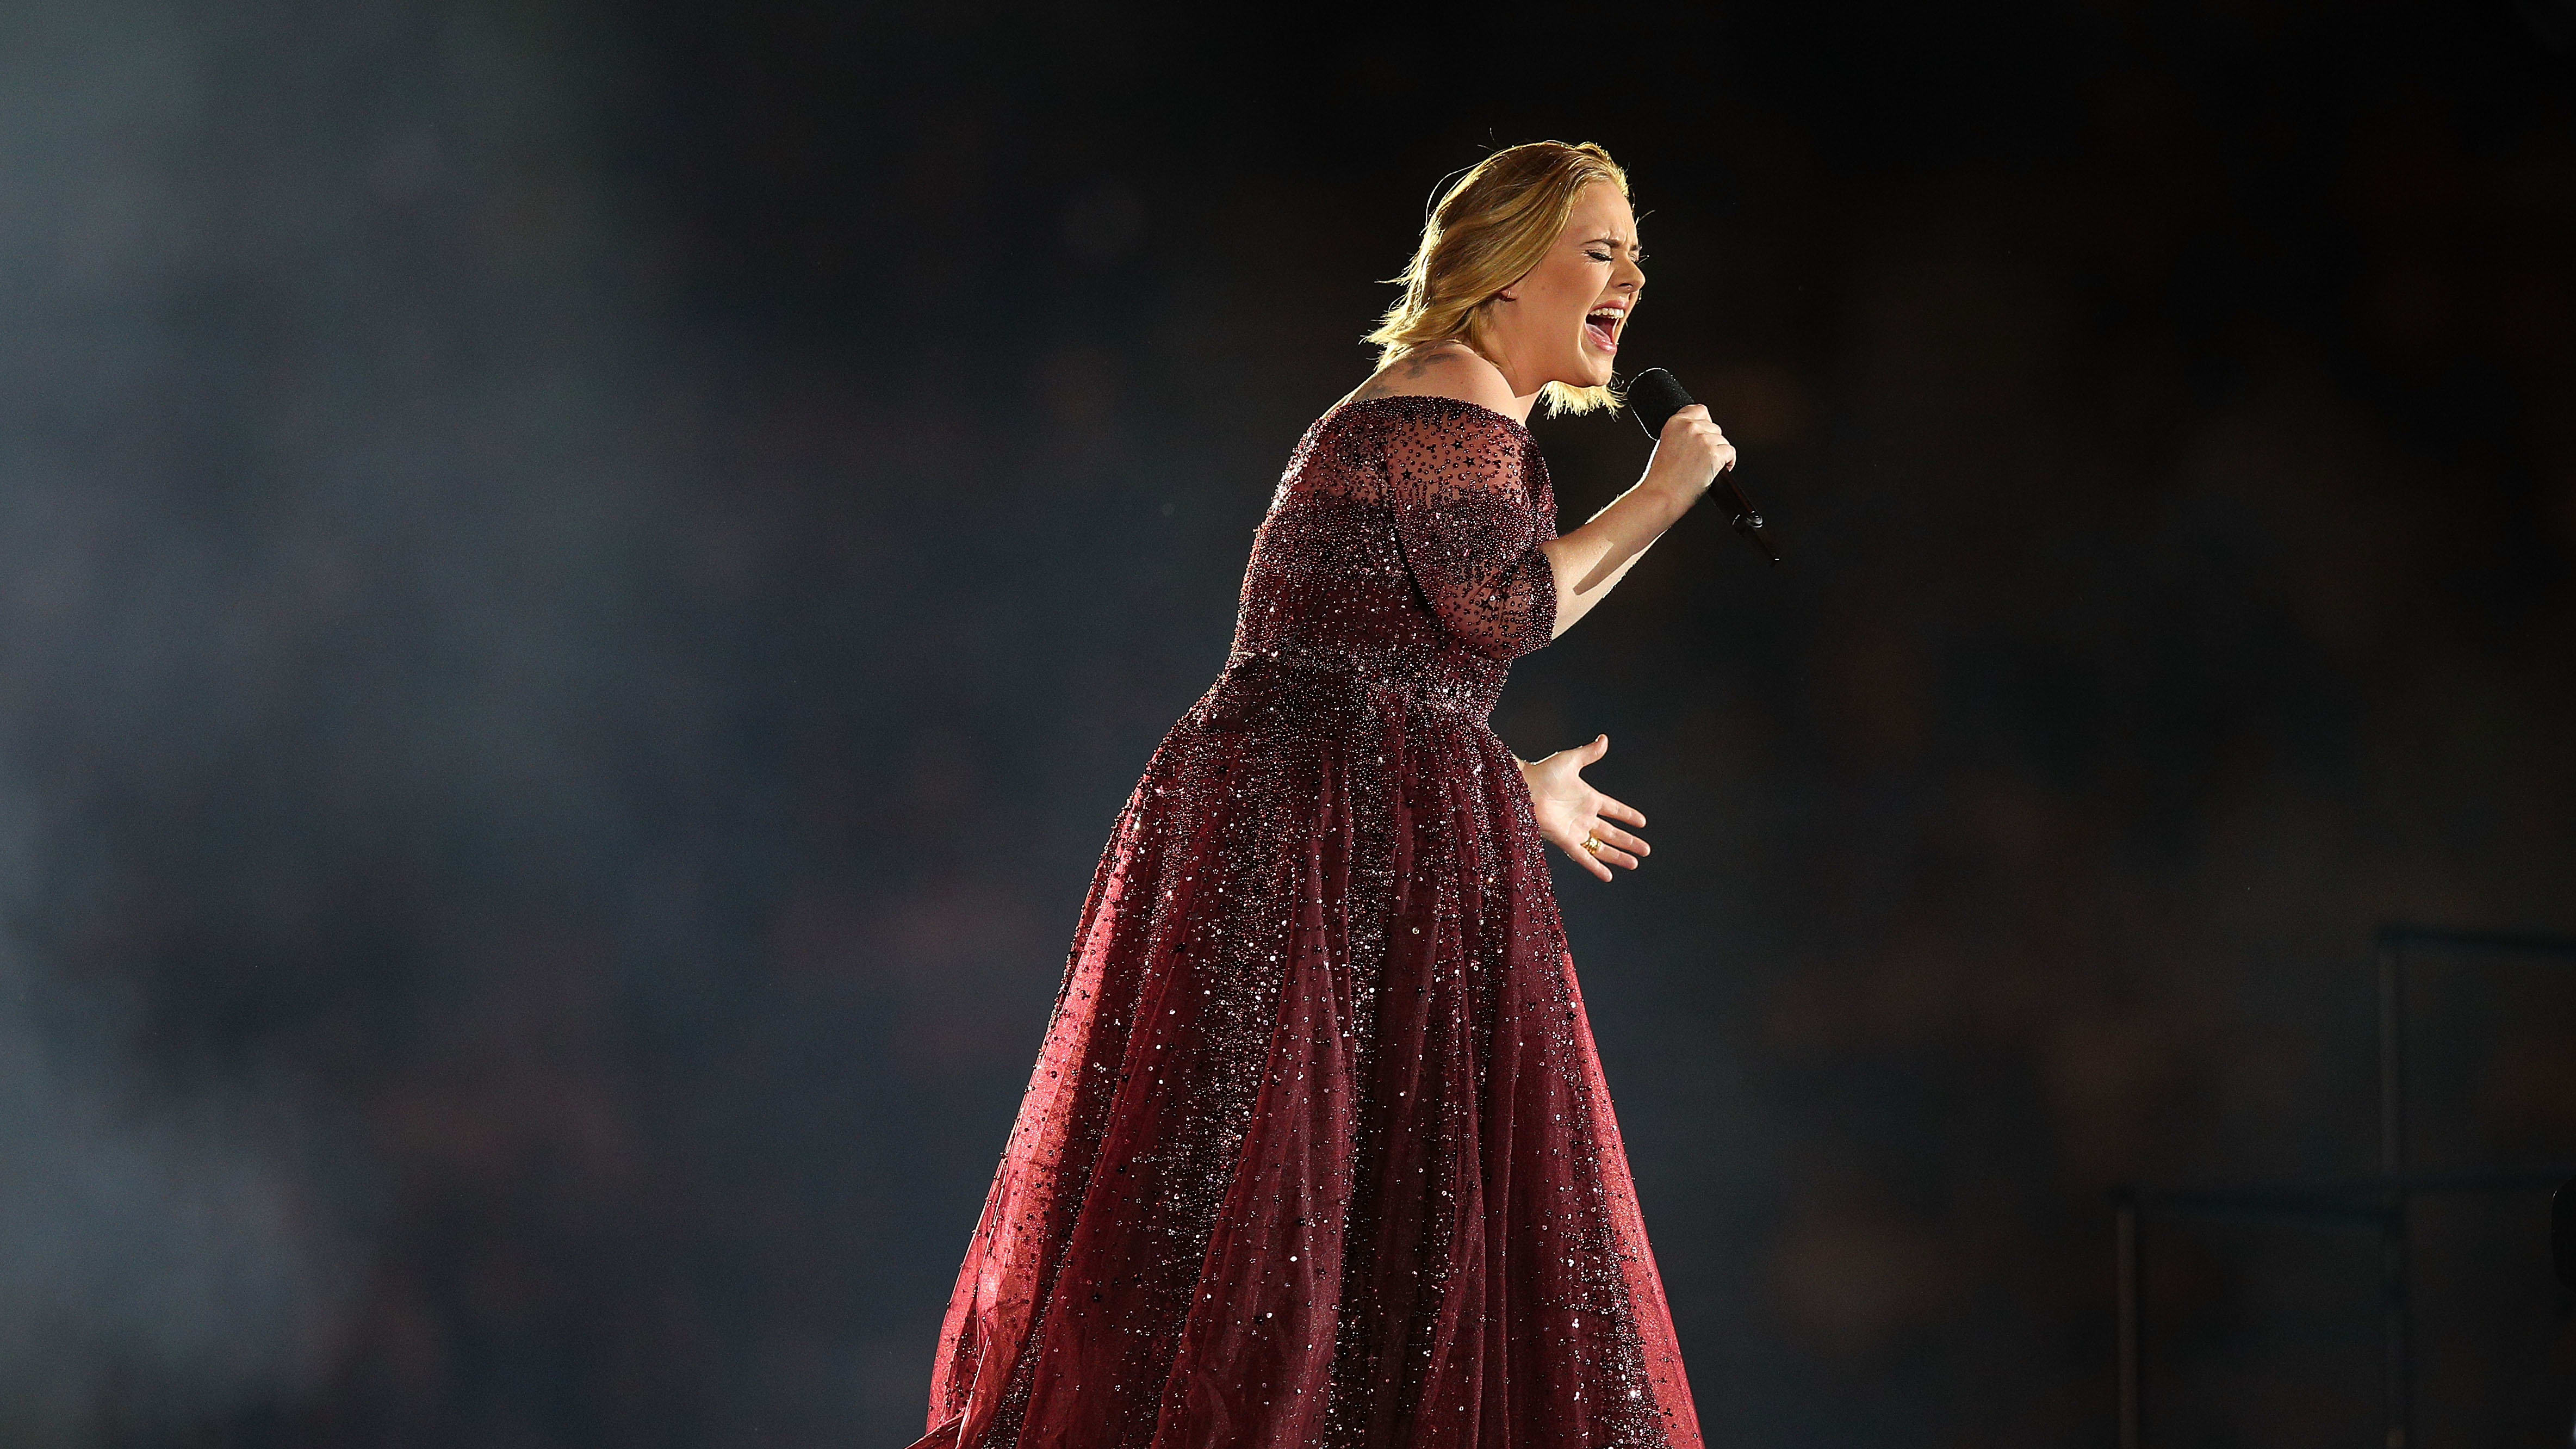 MELBOURNE, AUSTRALIA - MARCH 18:  Adele performs at Etihad Stadium on March 18, 2017 in Melbourne, Australia.  (Photo by Graham Denholm/Getty Images)